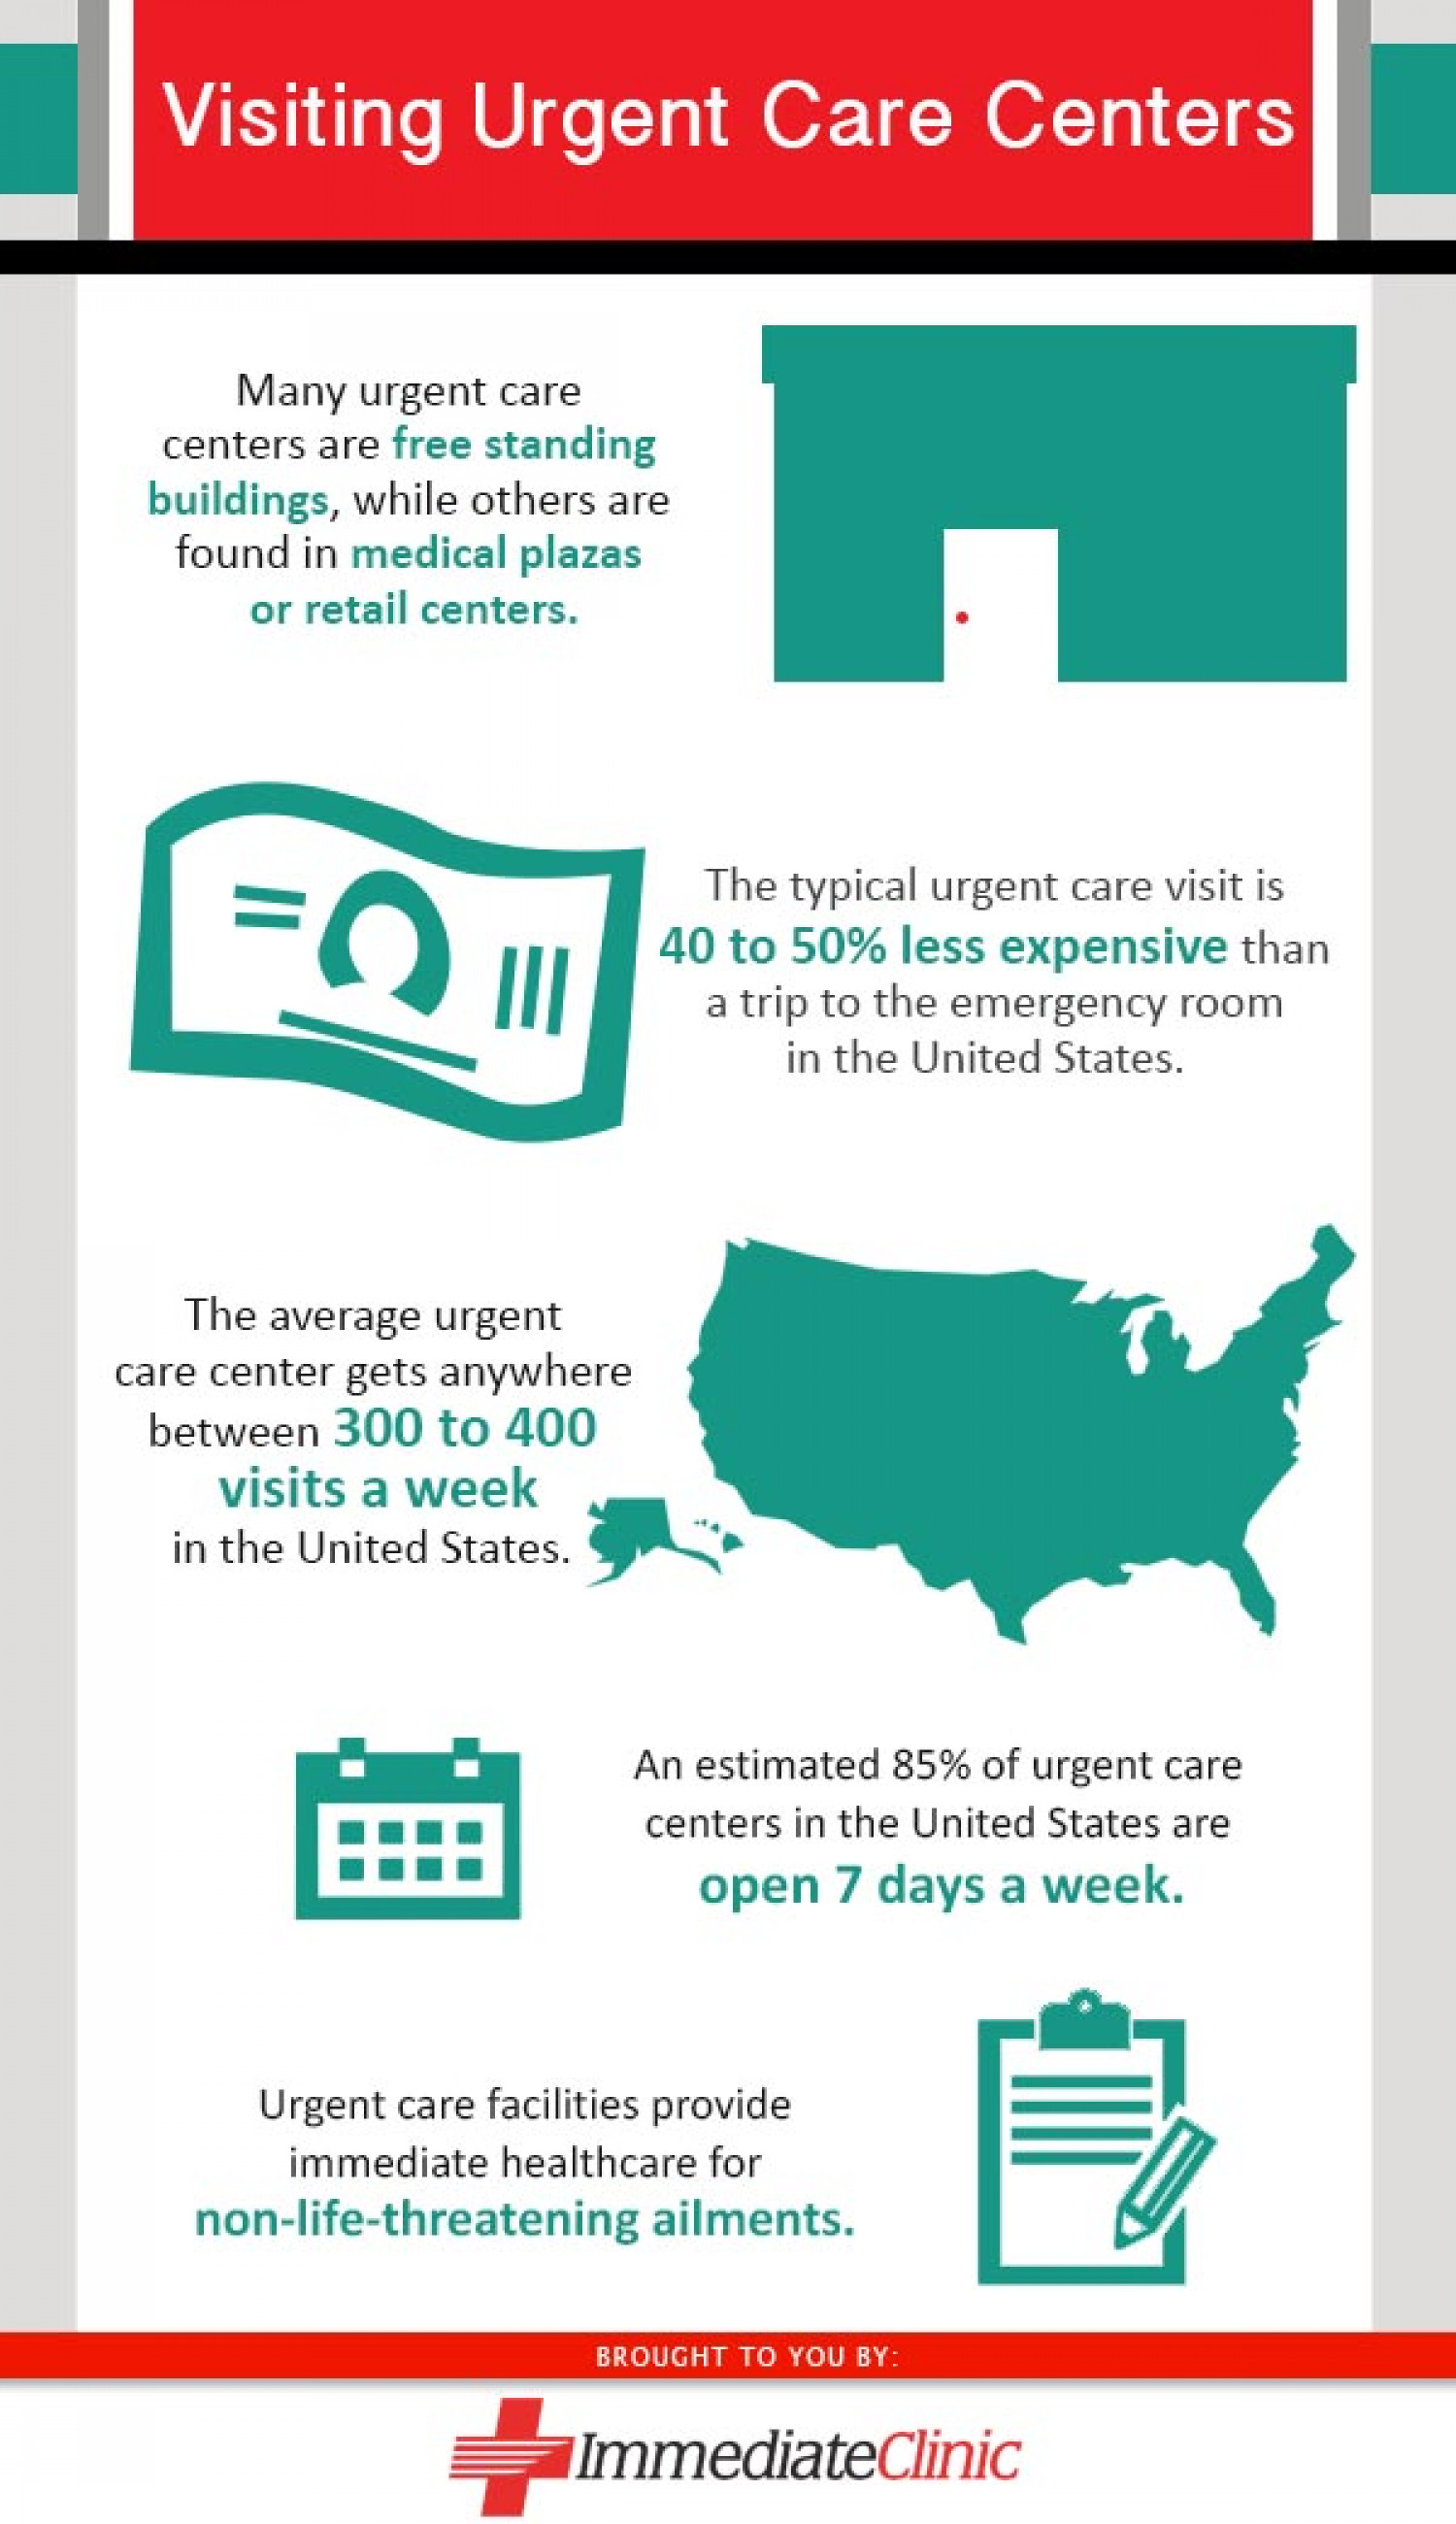 Visiting Urgent Care Centers Infographic